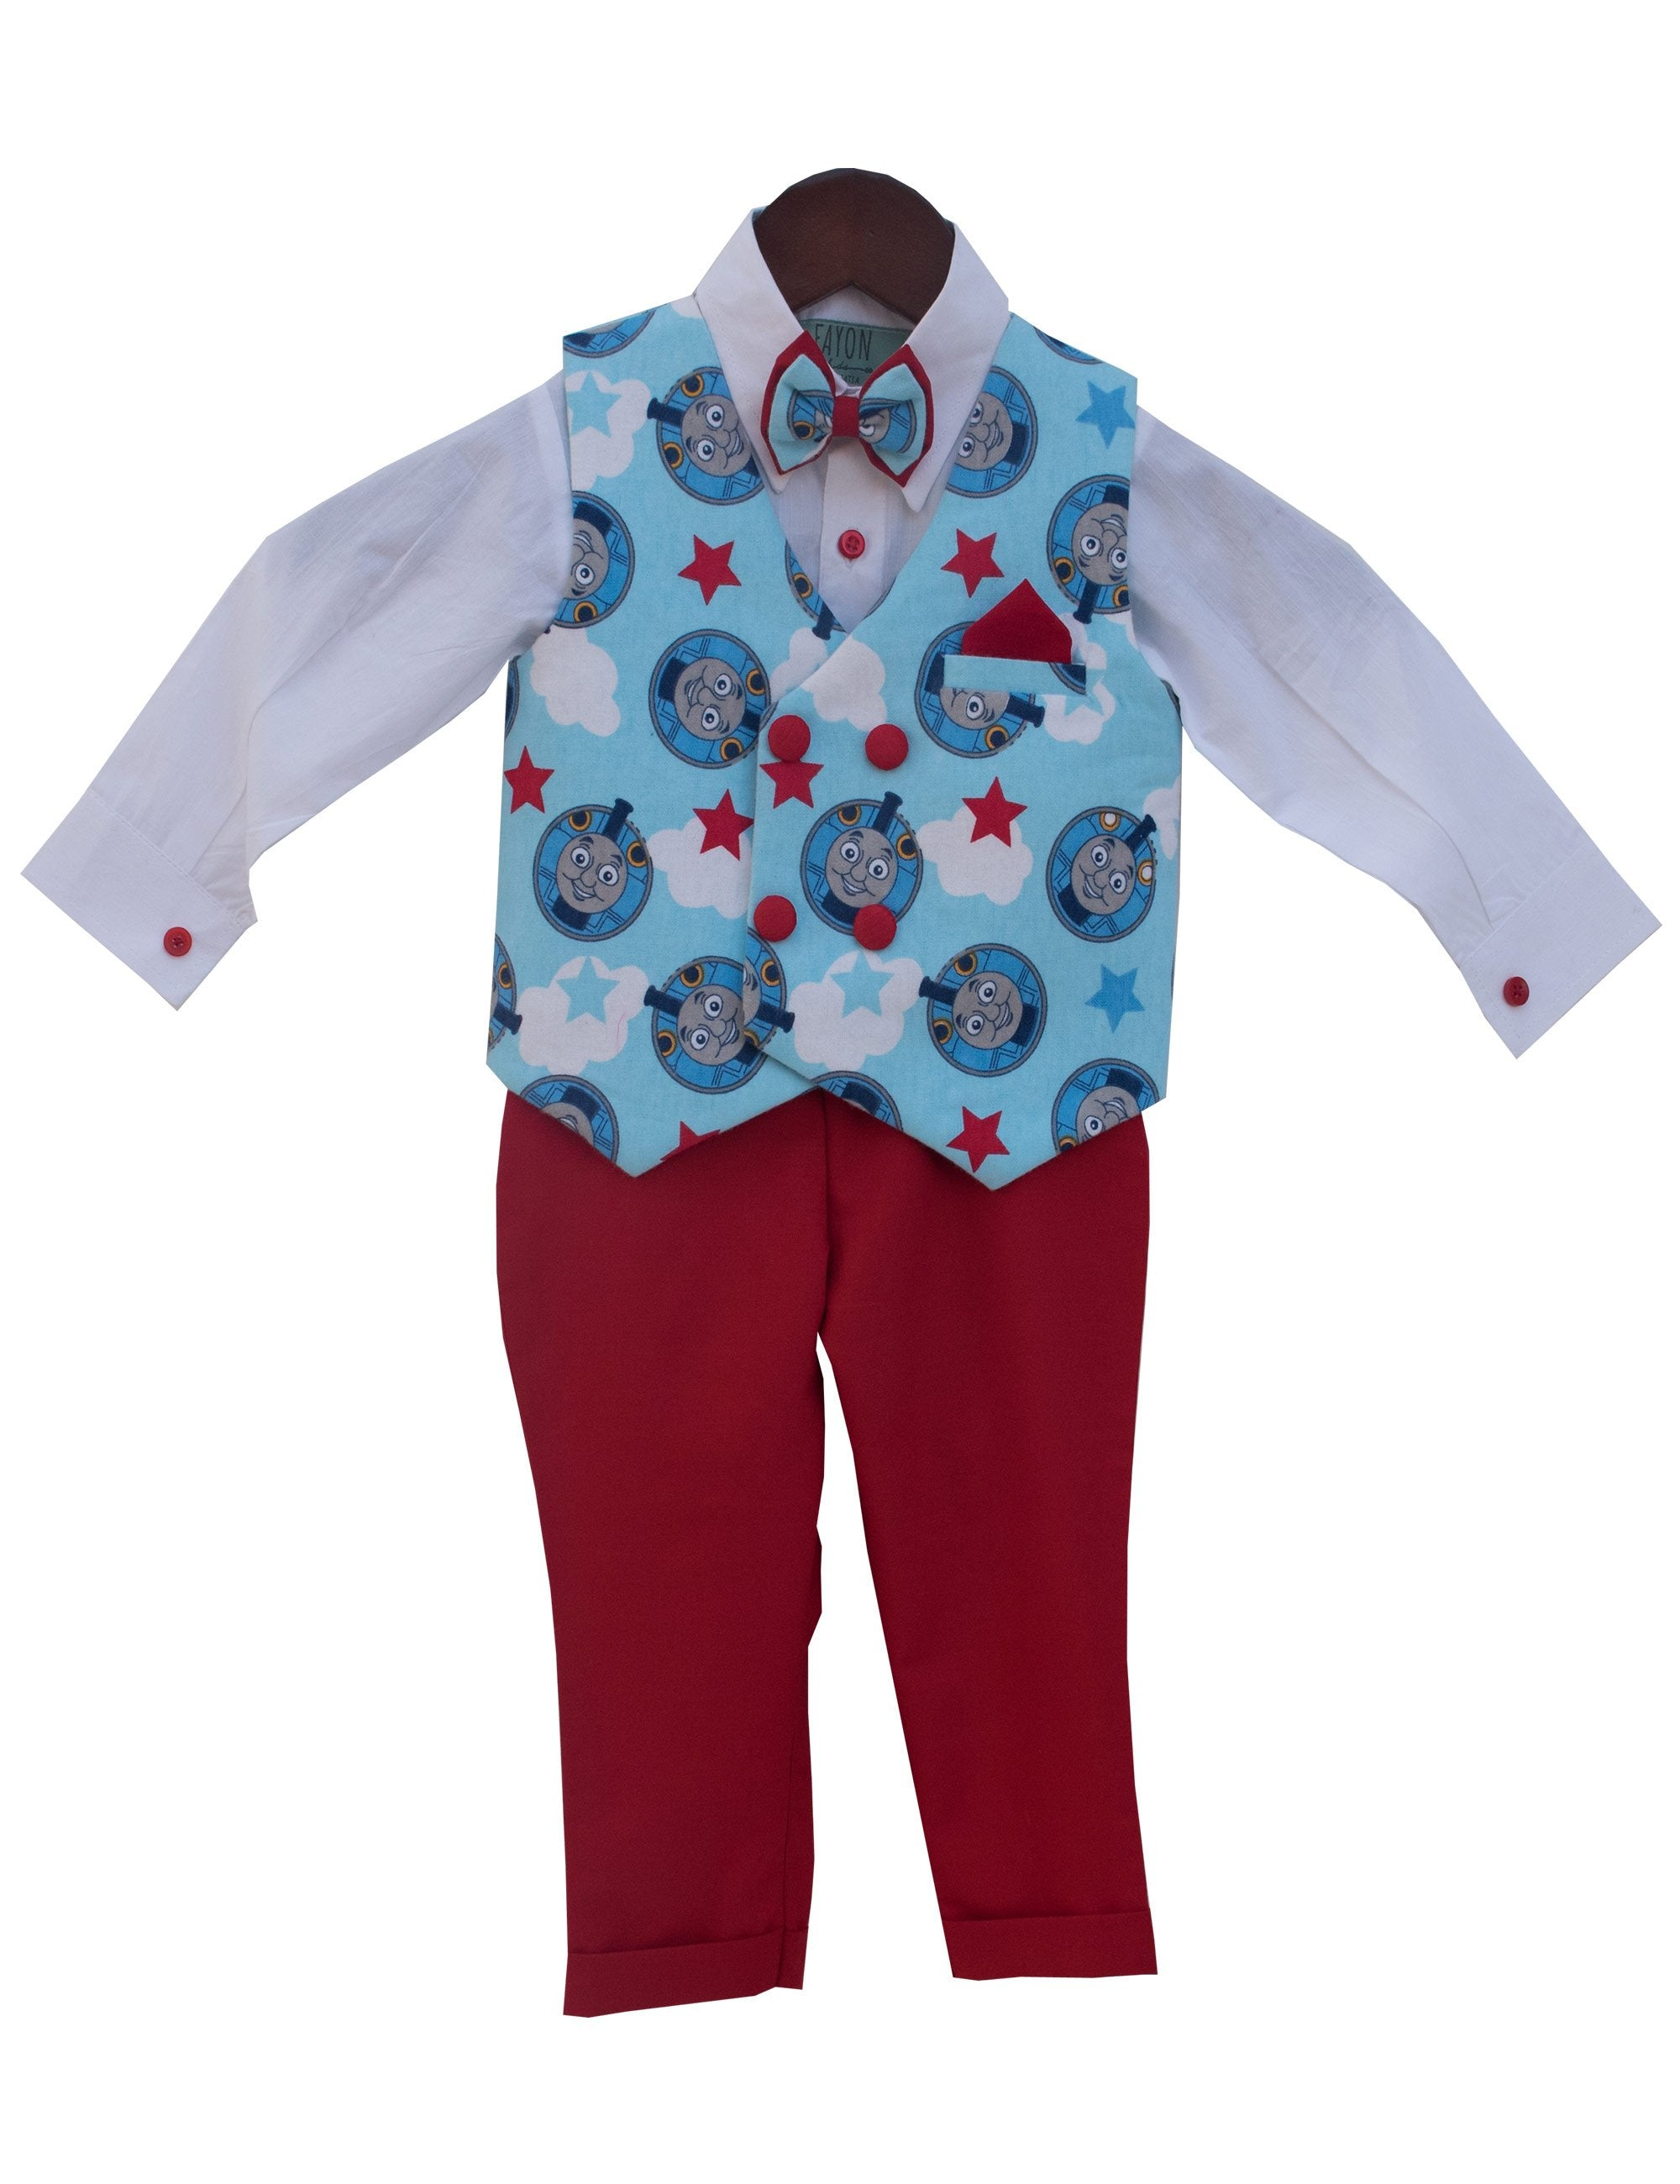 White Shirt with Blue Printed Waist Coat and Red Pant Set for Boys